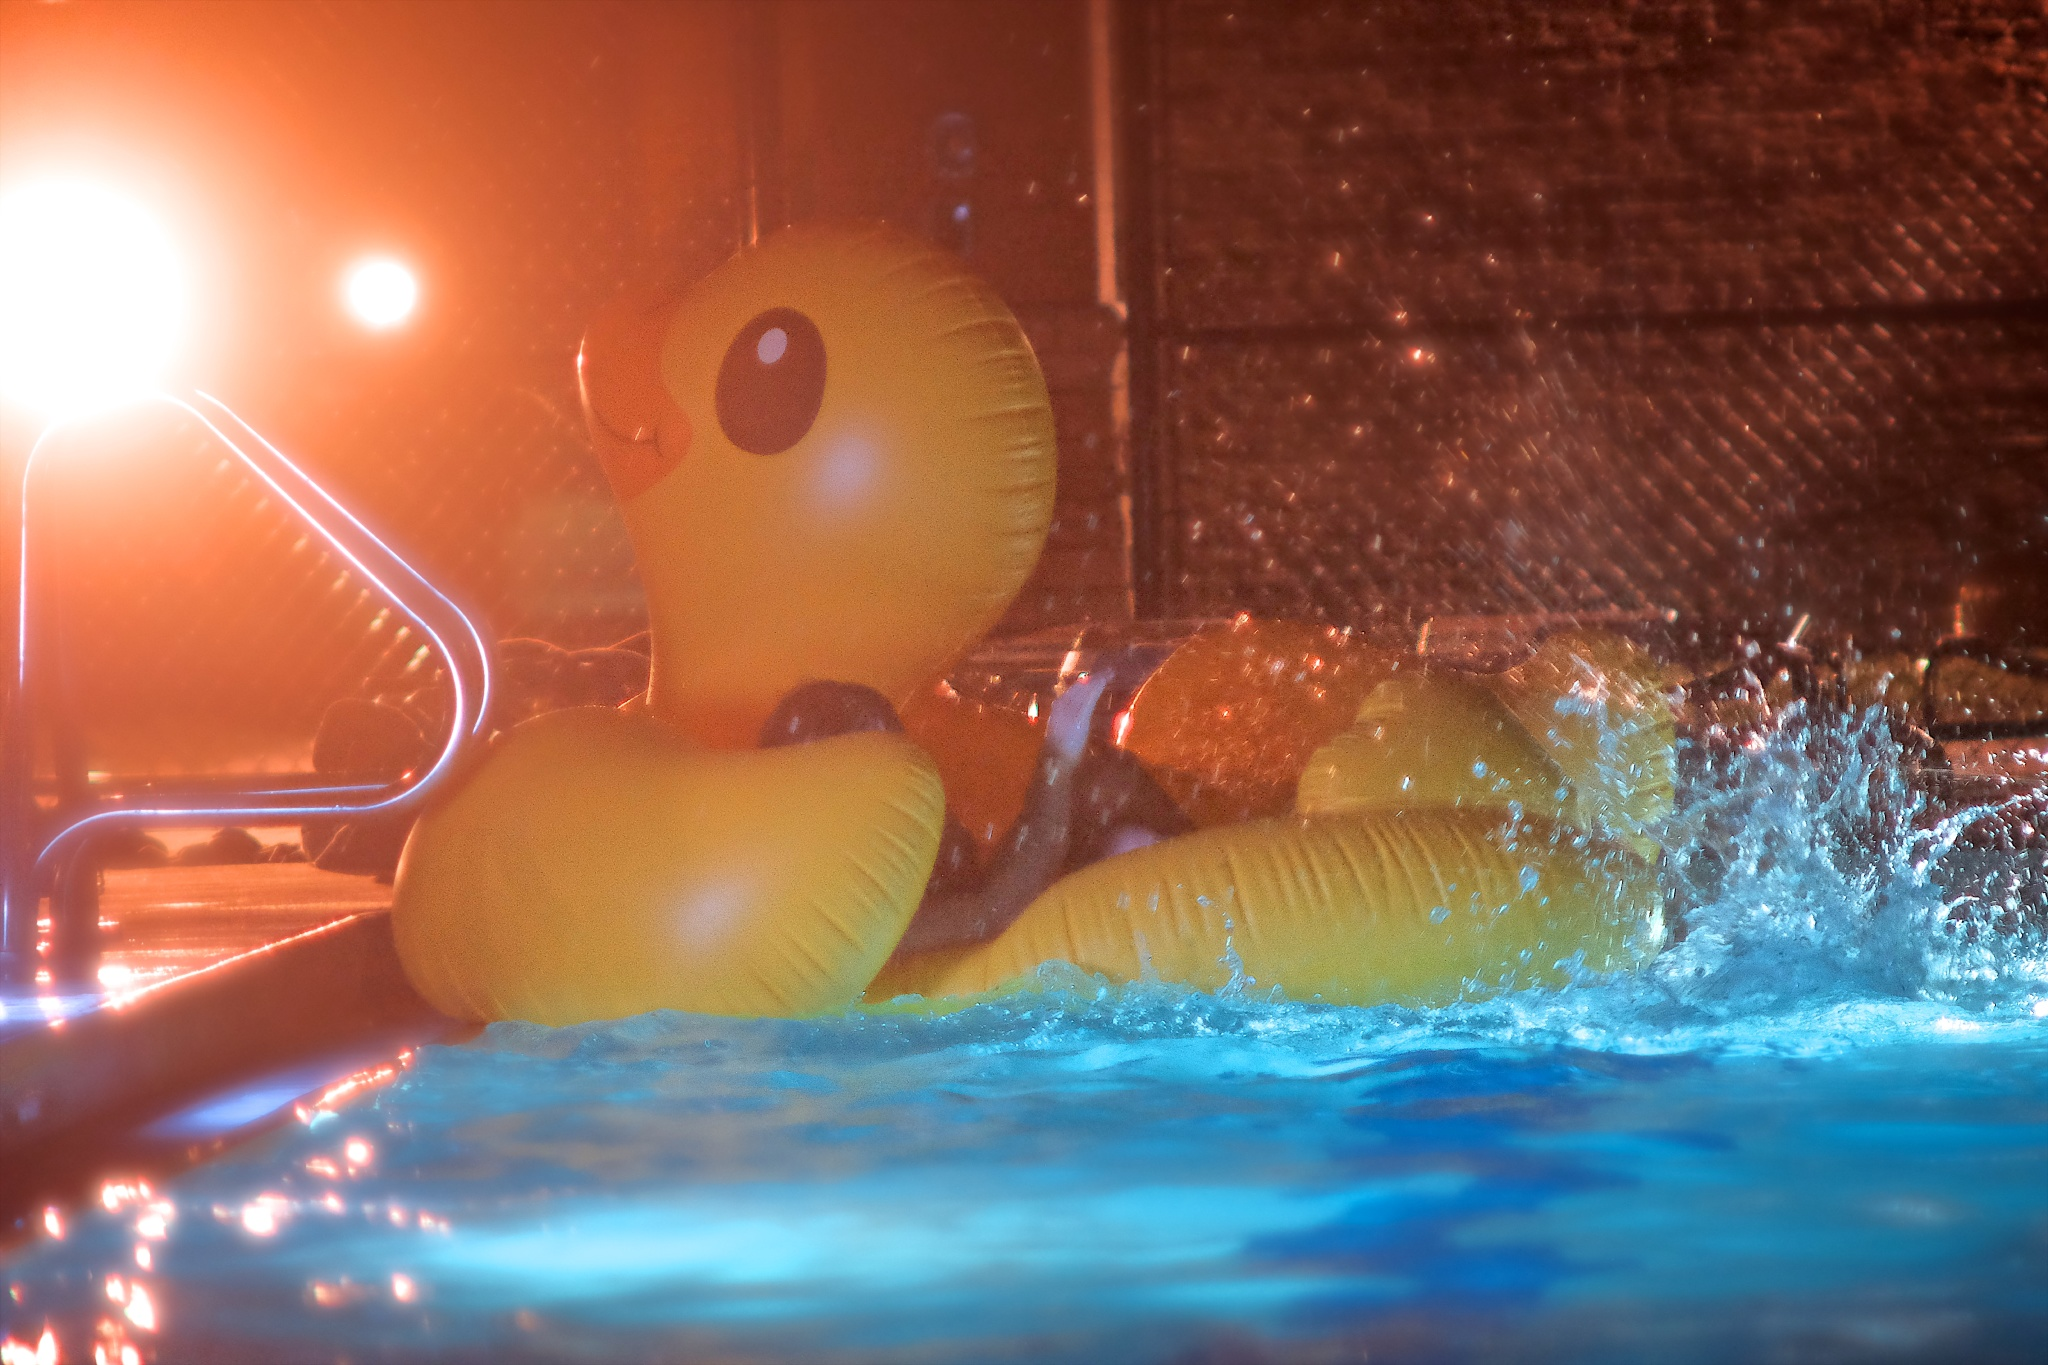 No after-hours pool party is complete without a large rubber duck. Taken from the set of Nick Brennan's music video Buck Naked